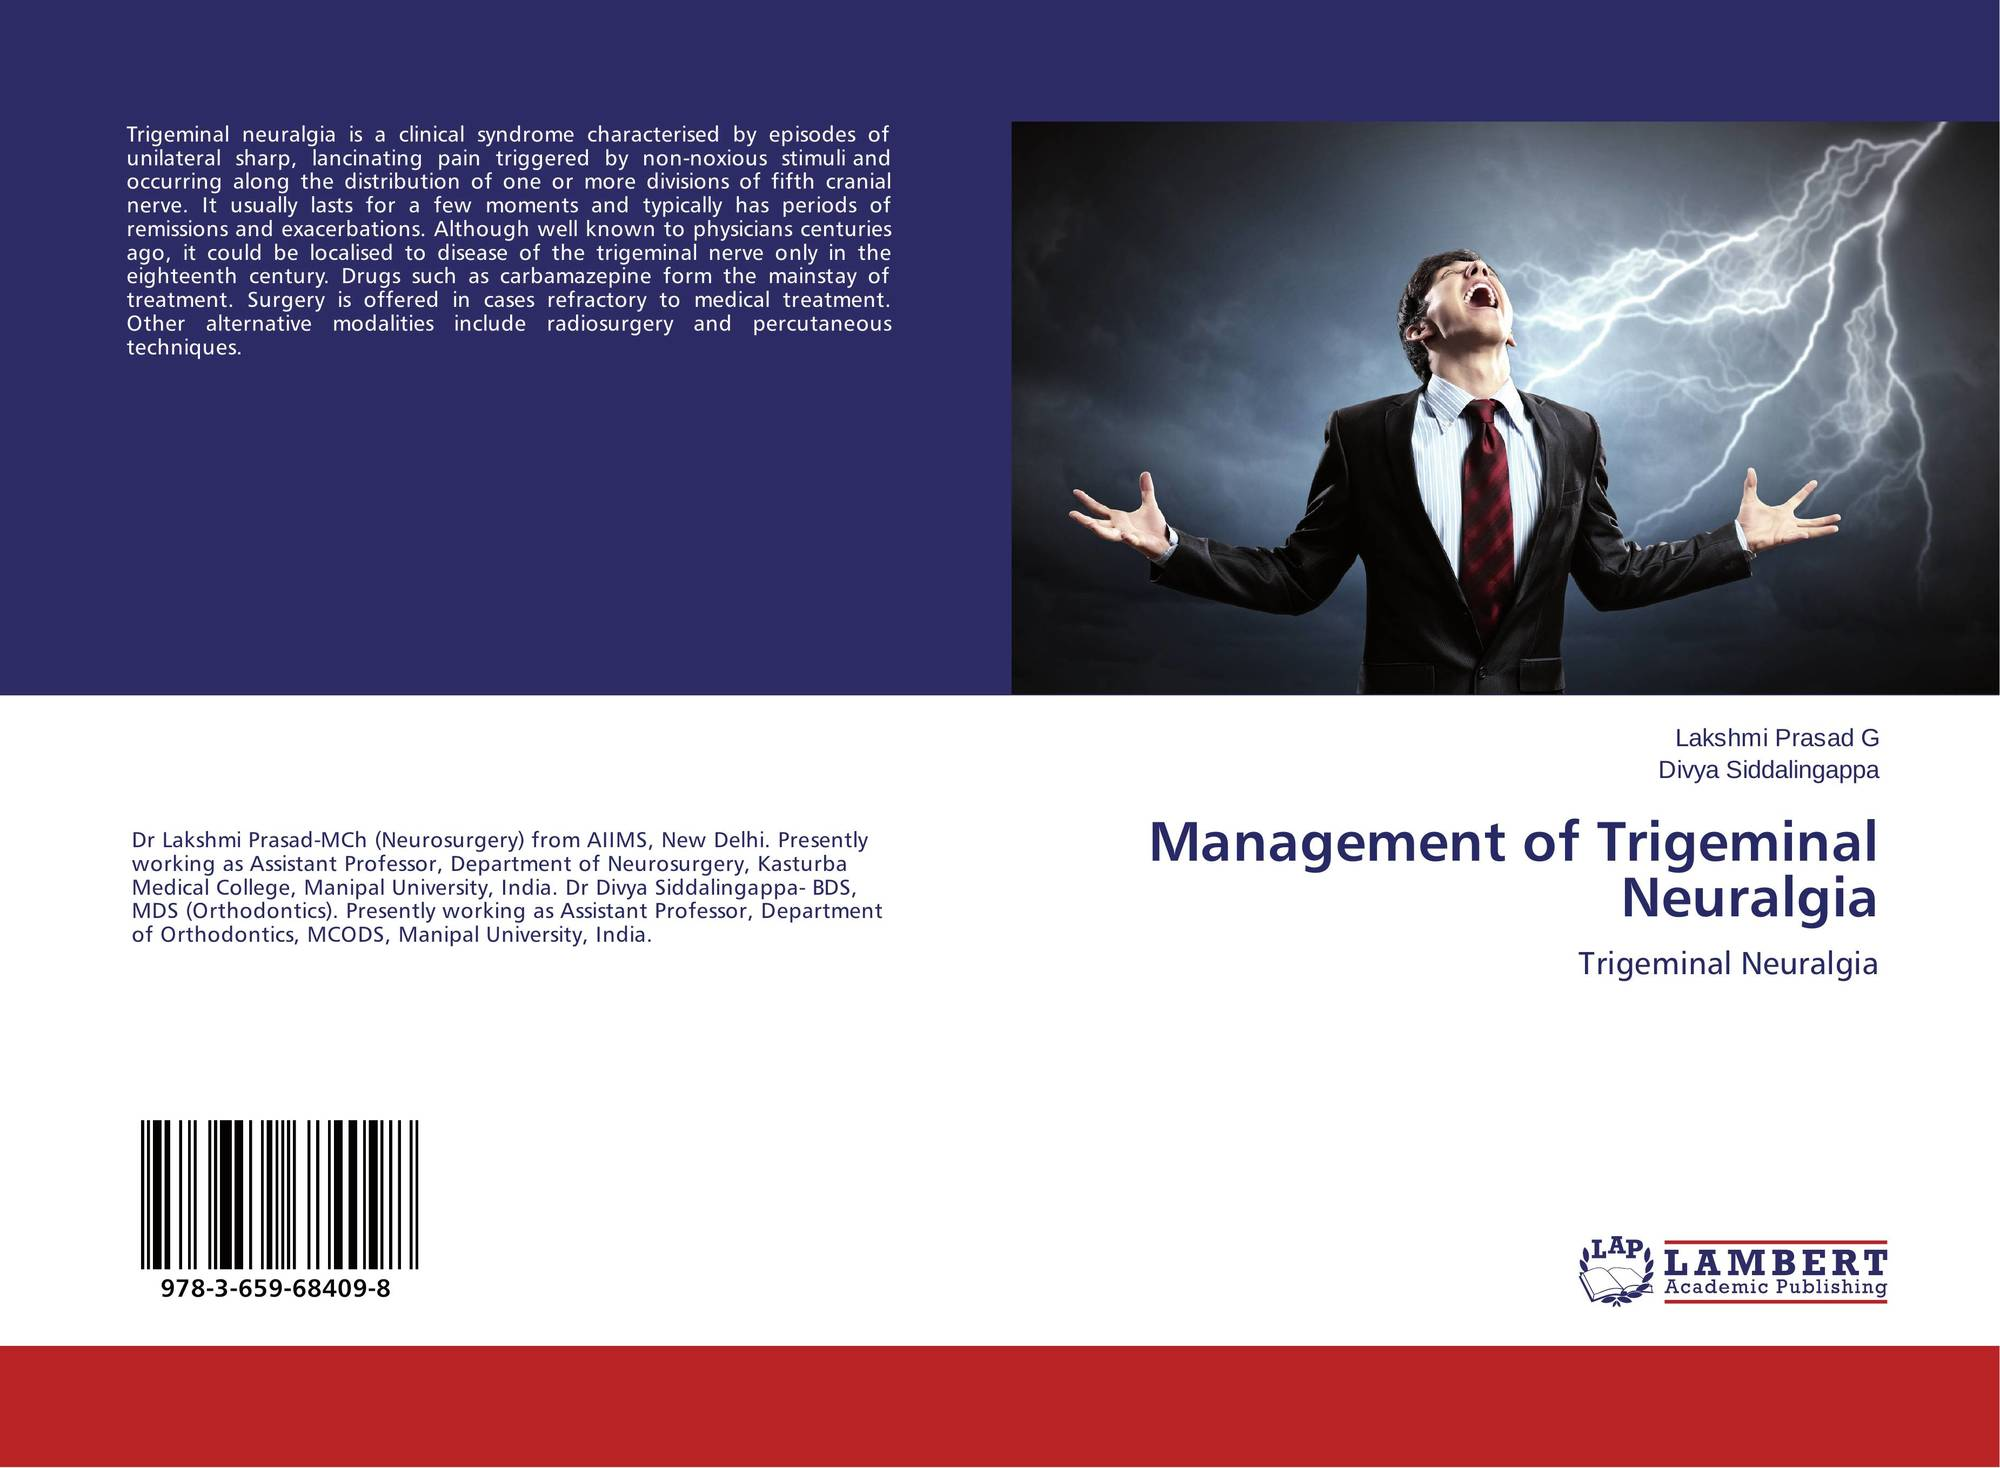 Management of postherpetic neuralgia in adults